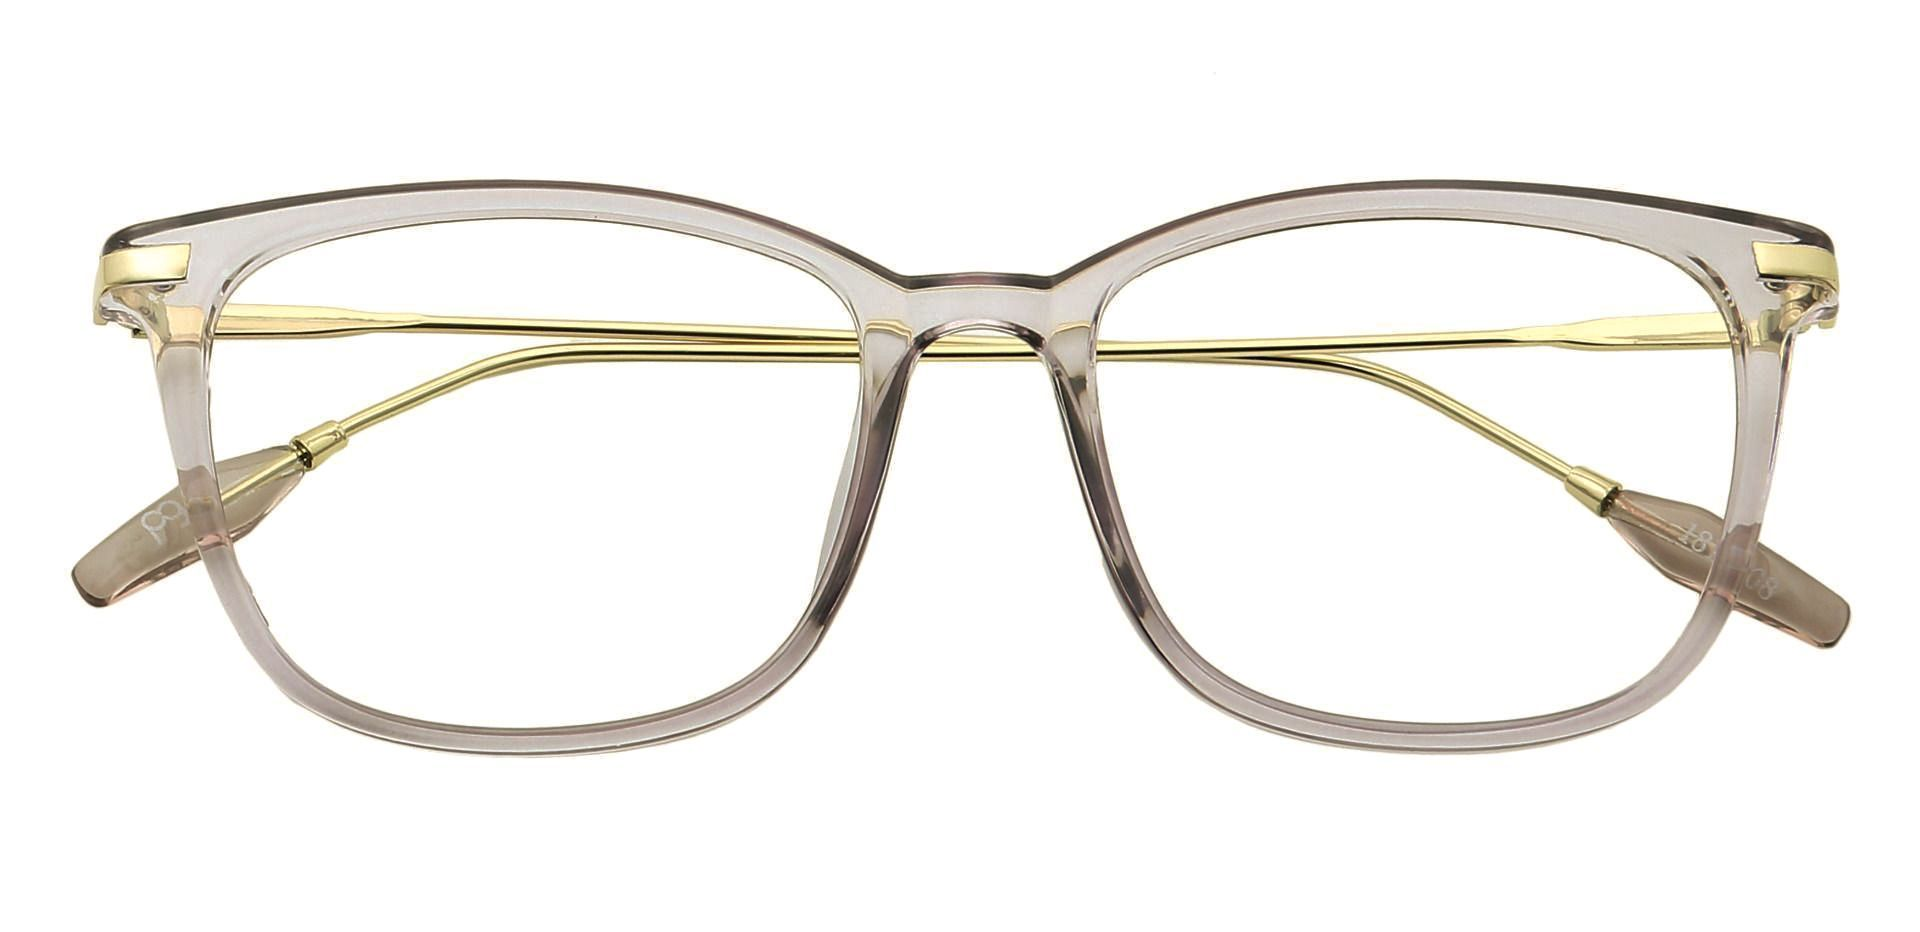 Katie Oval Lined Bifocal Glasses - The Frame Is Clear With Light Purple